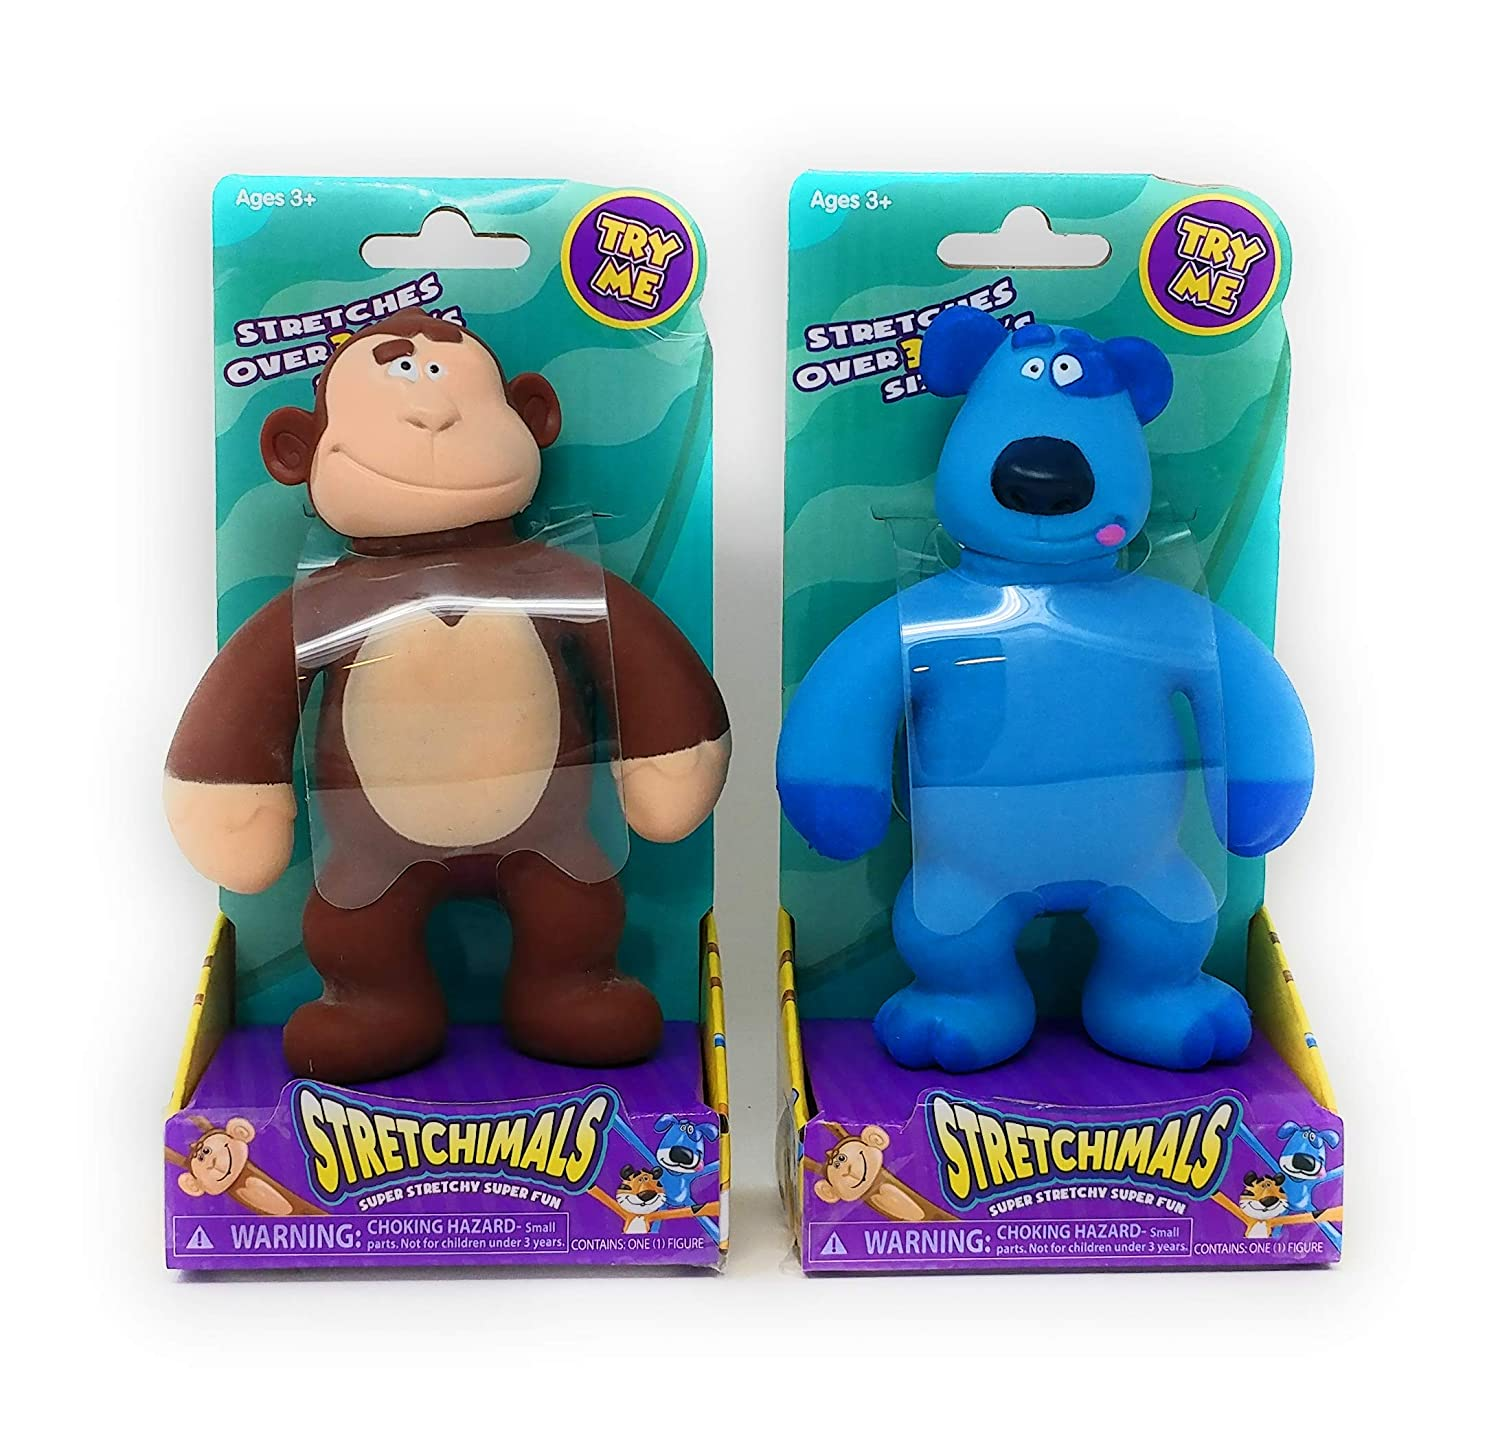 Yanky Monkey /& Pully Puppy NEW Stretchimals Set of 2